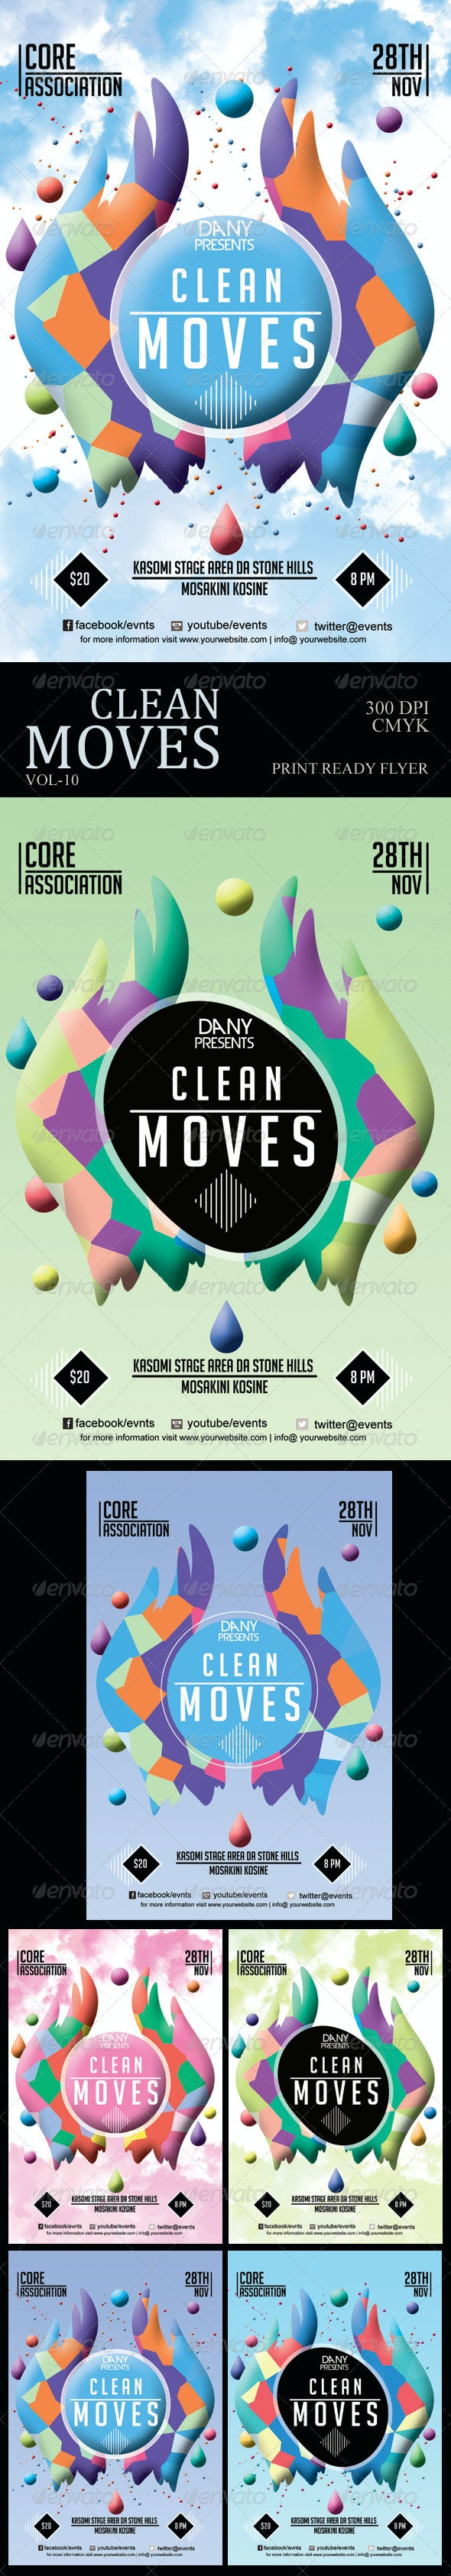 Clean Moves Futuristic Flyer 10 - Clubs & Parties Events